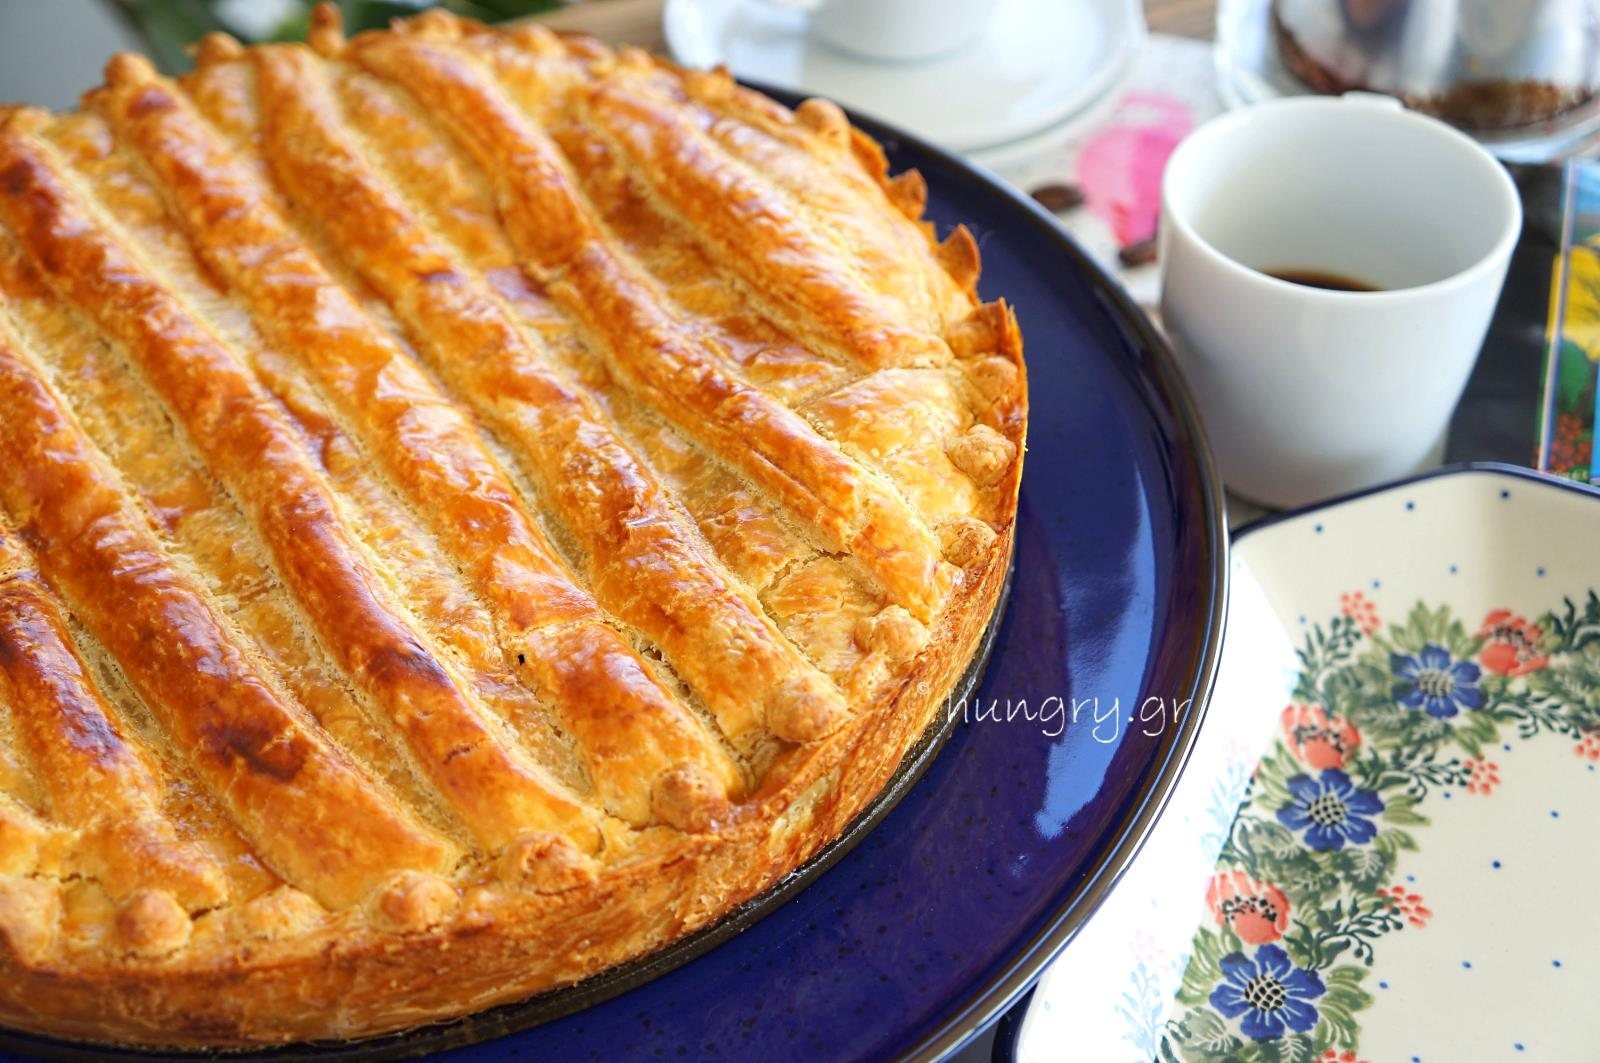 Apple Pie with Caramelized Apples